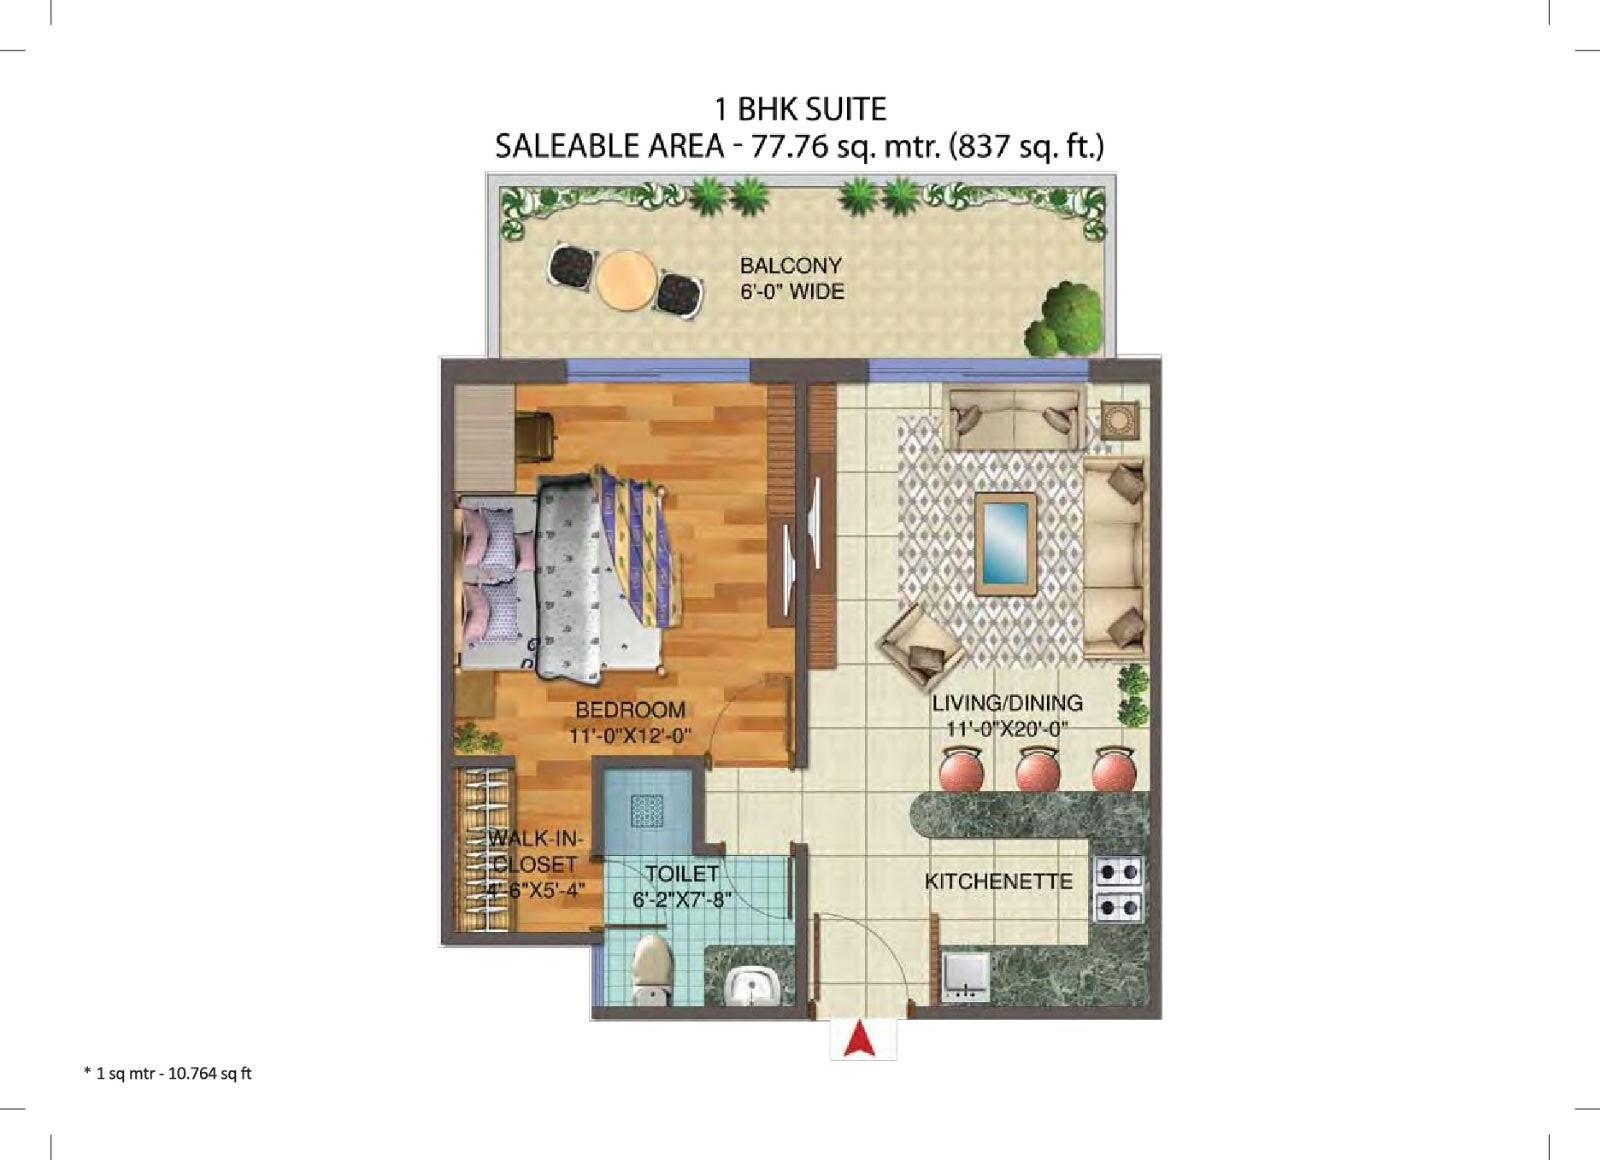 Central Park 3 The Room Studio Apartments Sector 33 Gurgaon